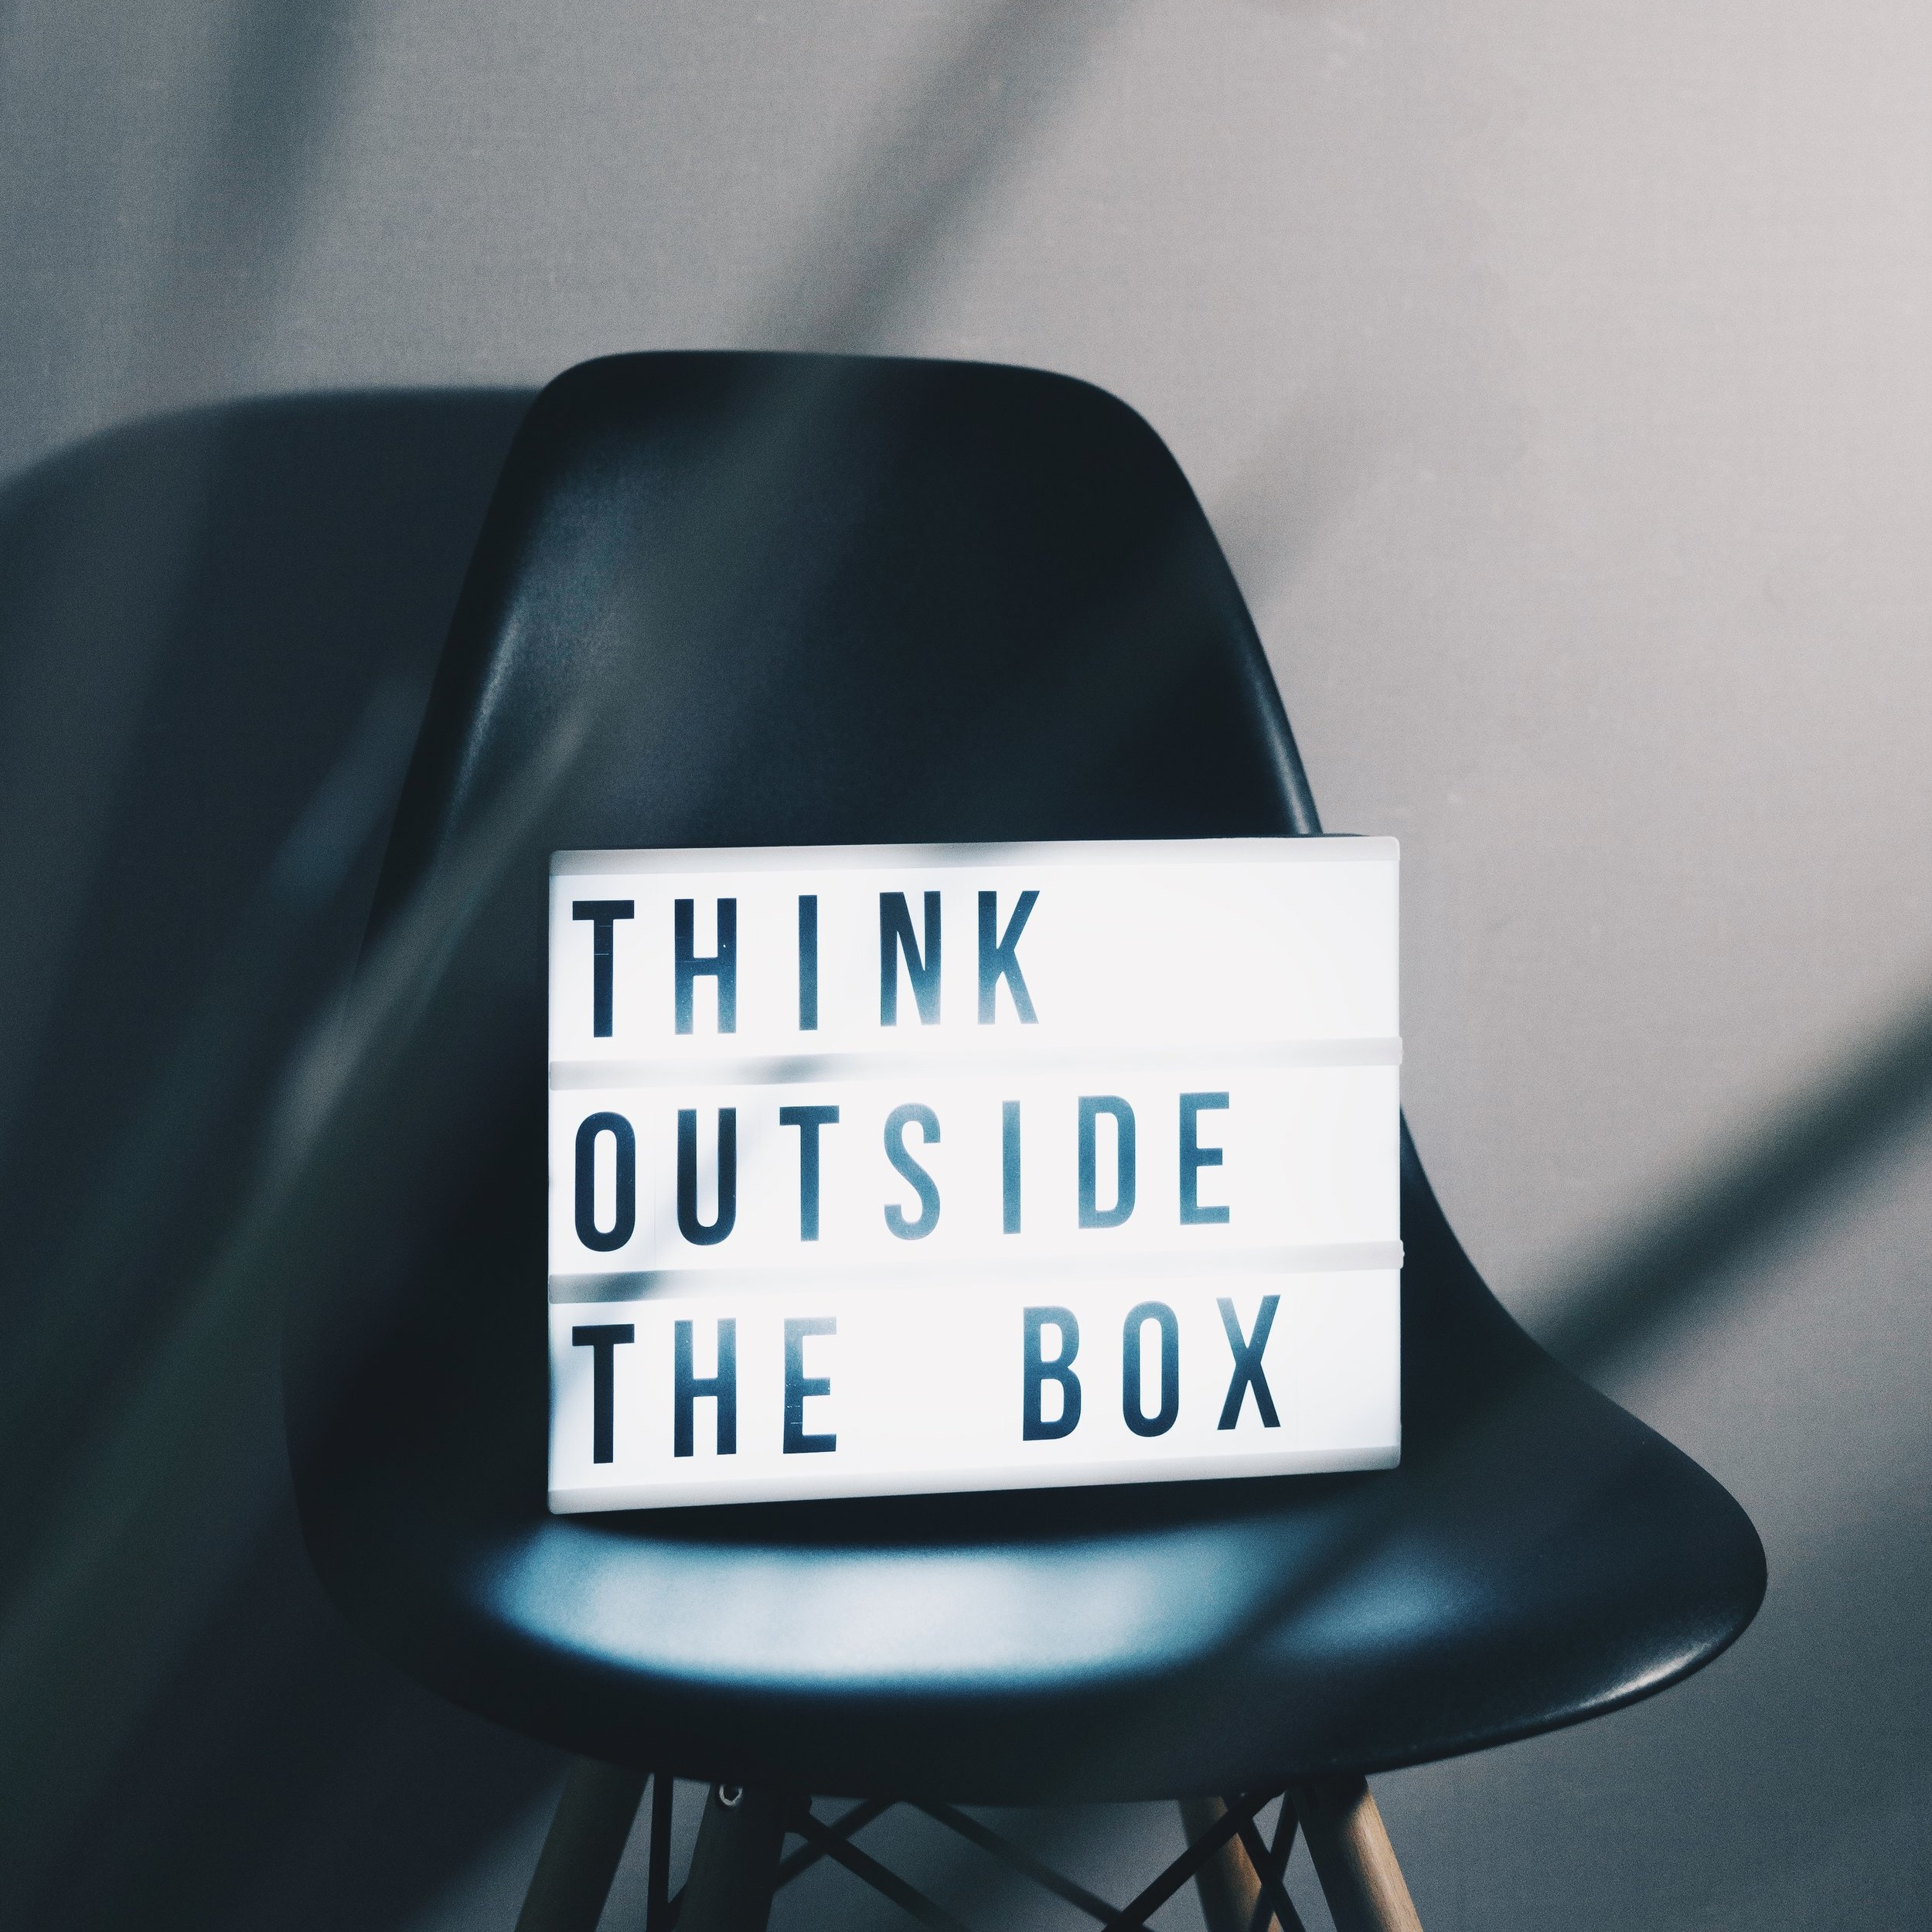 """YOur idea is irrelevant until the client thinks it is - To get firms to care about your product, you have to solve their problem. Too many firms try to """"think outside the box"""" and spend far too much time focusing on their clever idea and solution and not how it solves a problem that companies will pay for. One of my favorite client quotes is """"just because no one can sell it doesn't mean it's not a sellable product."""" Actually, that's exactly what it means."""